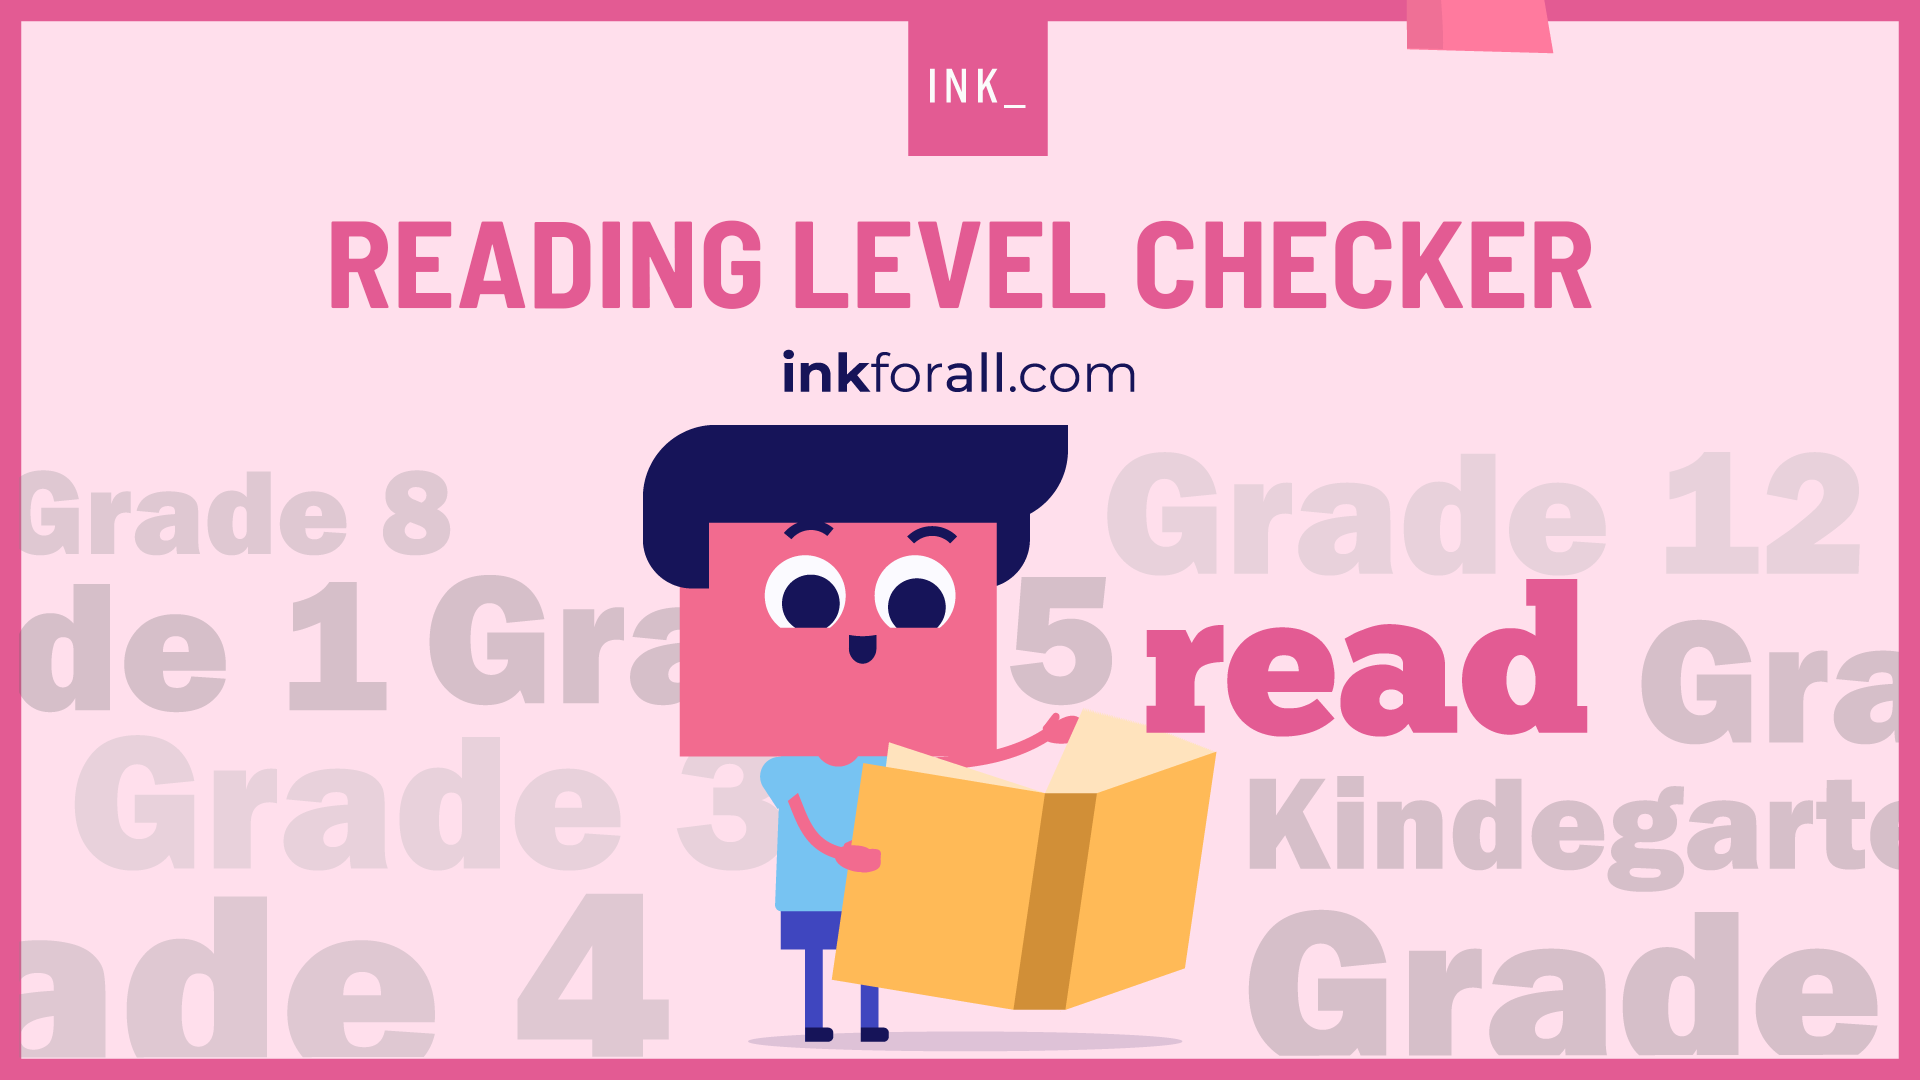 INK reading level checker